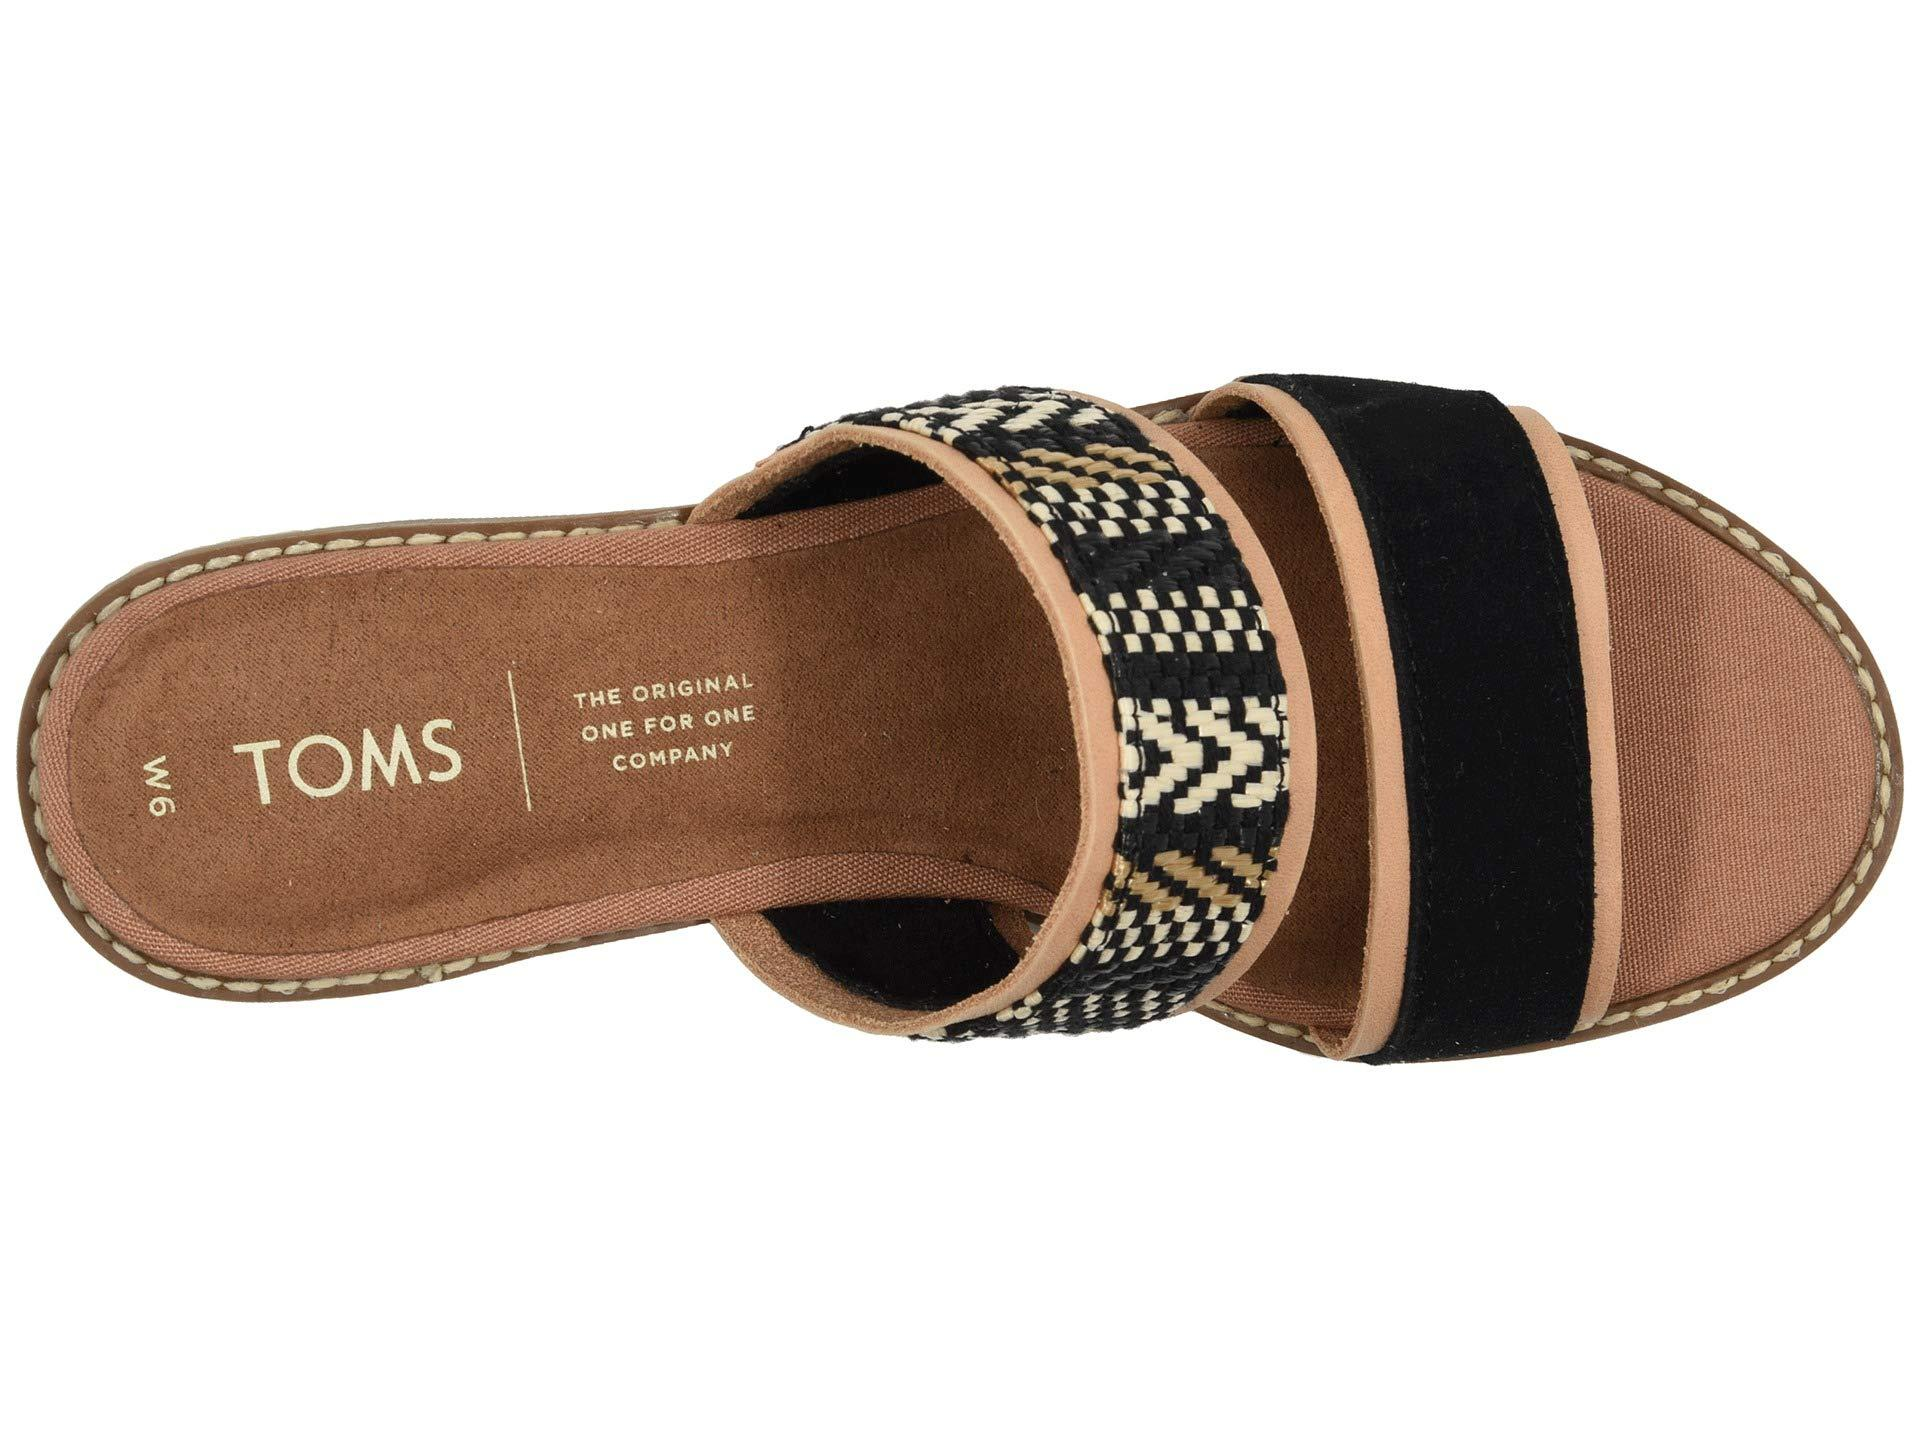 TOMS Black Suede With Geometric Woven